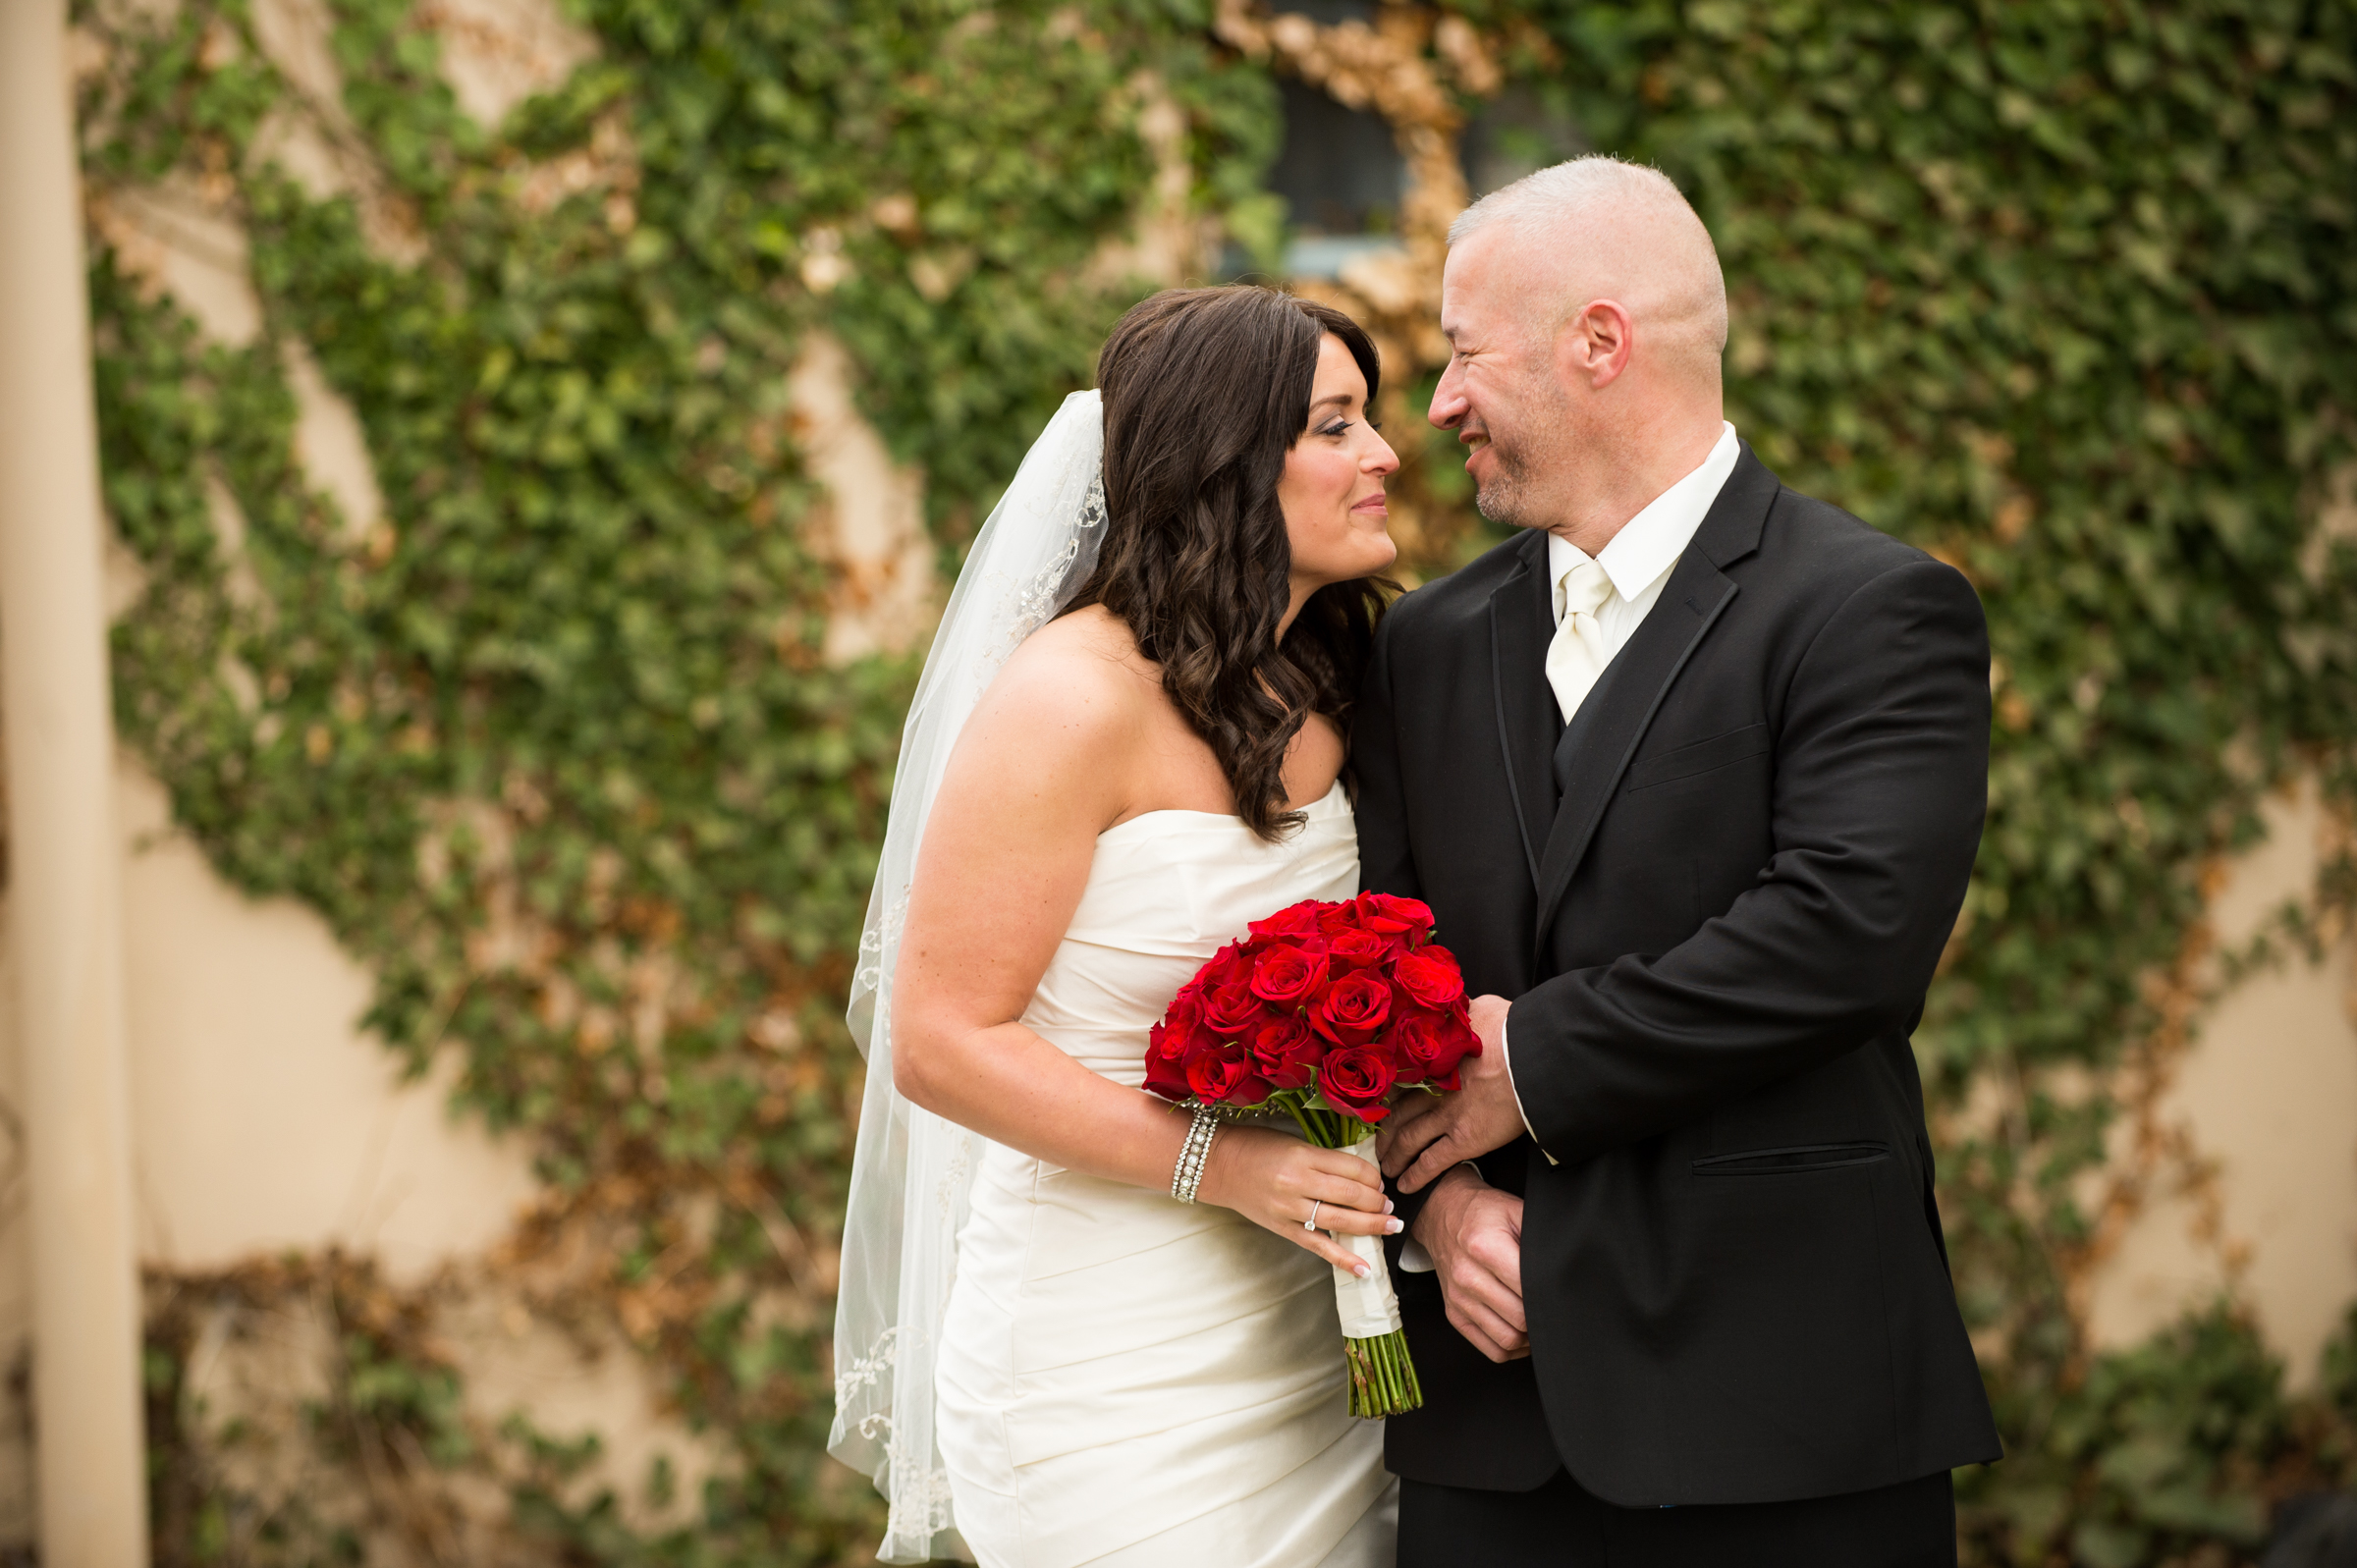 Mohawk River Country Club Wedding